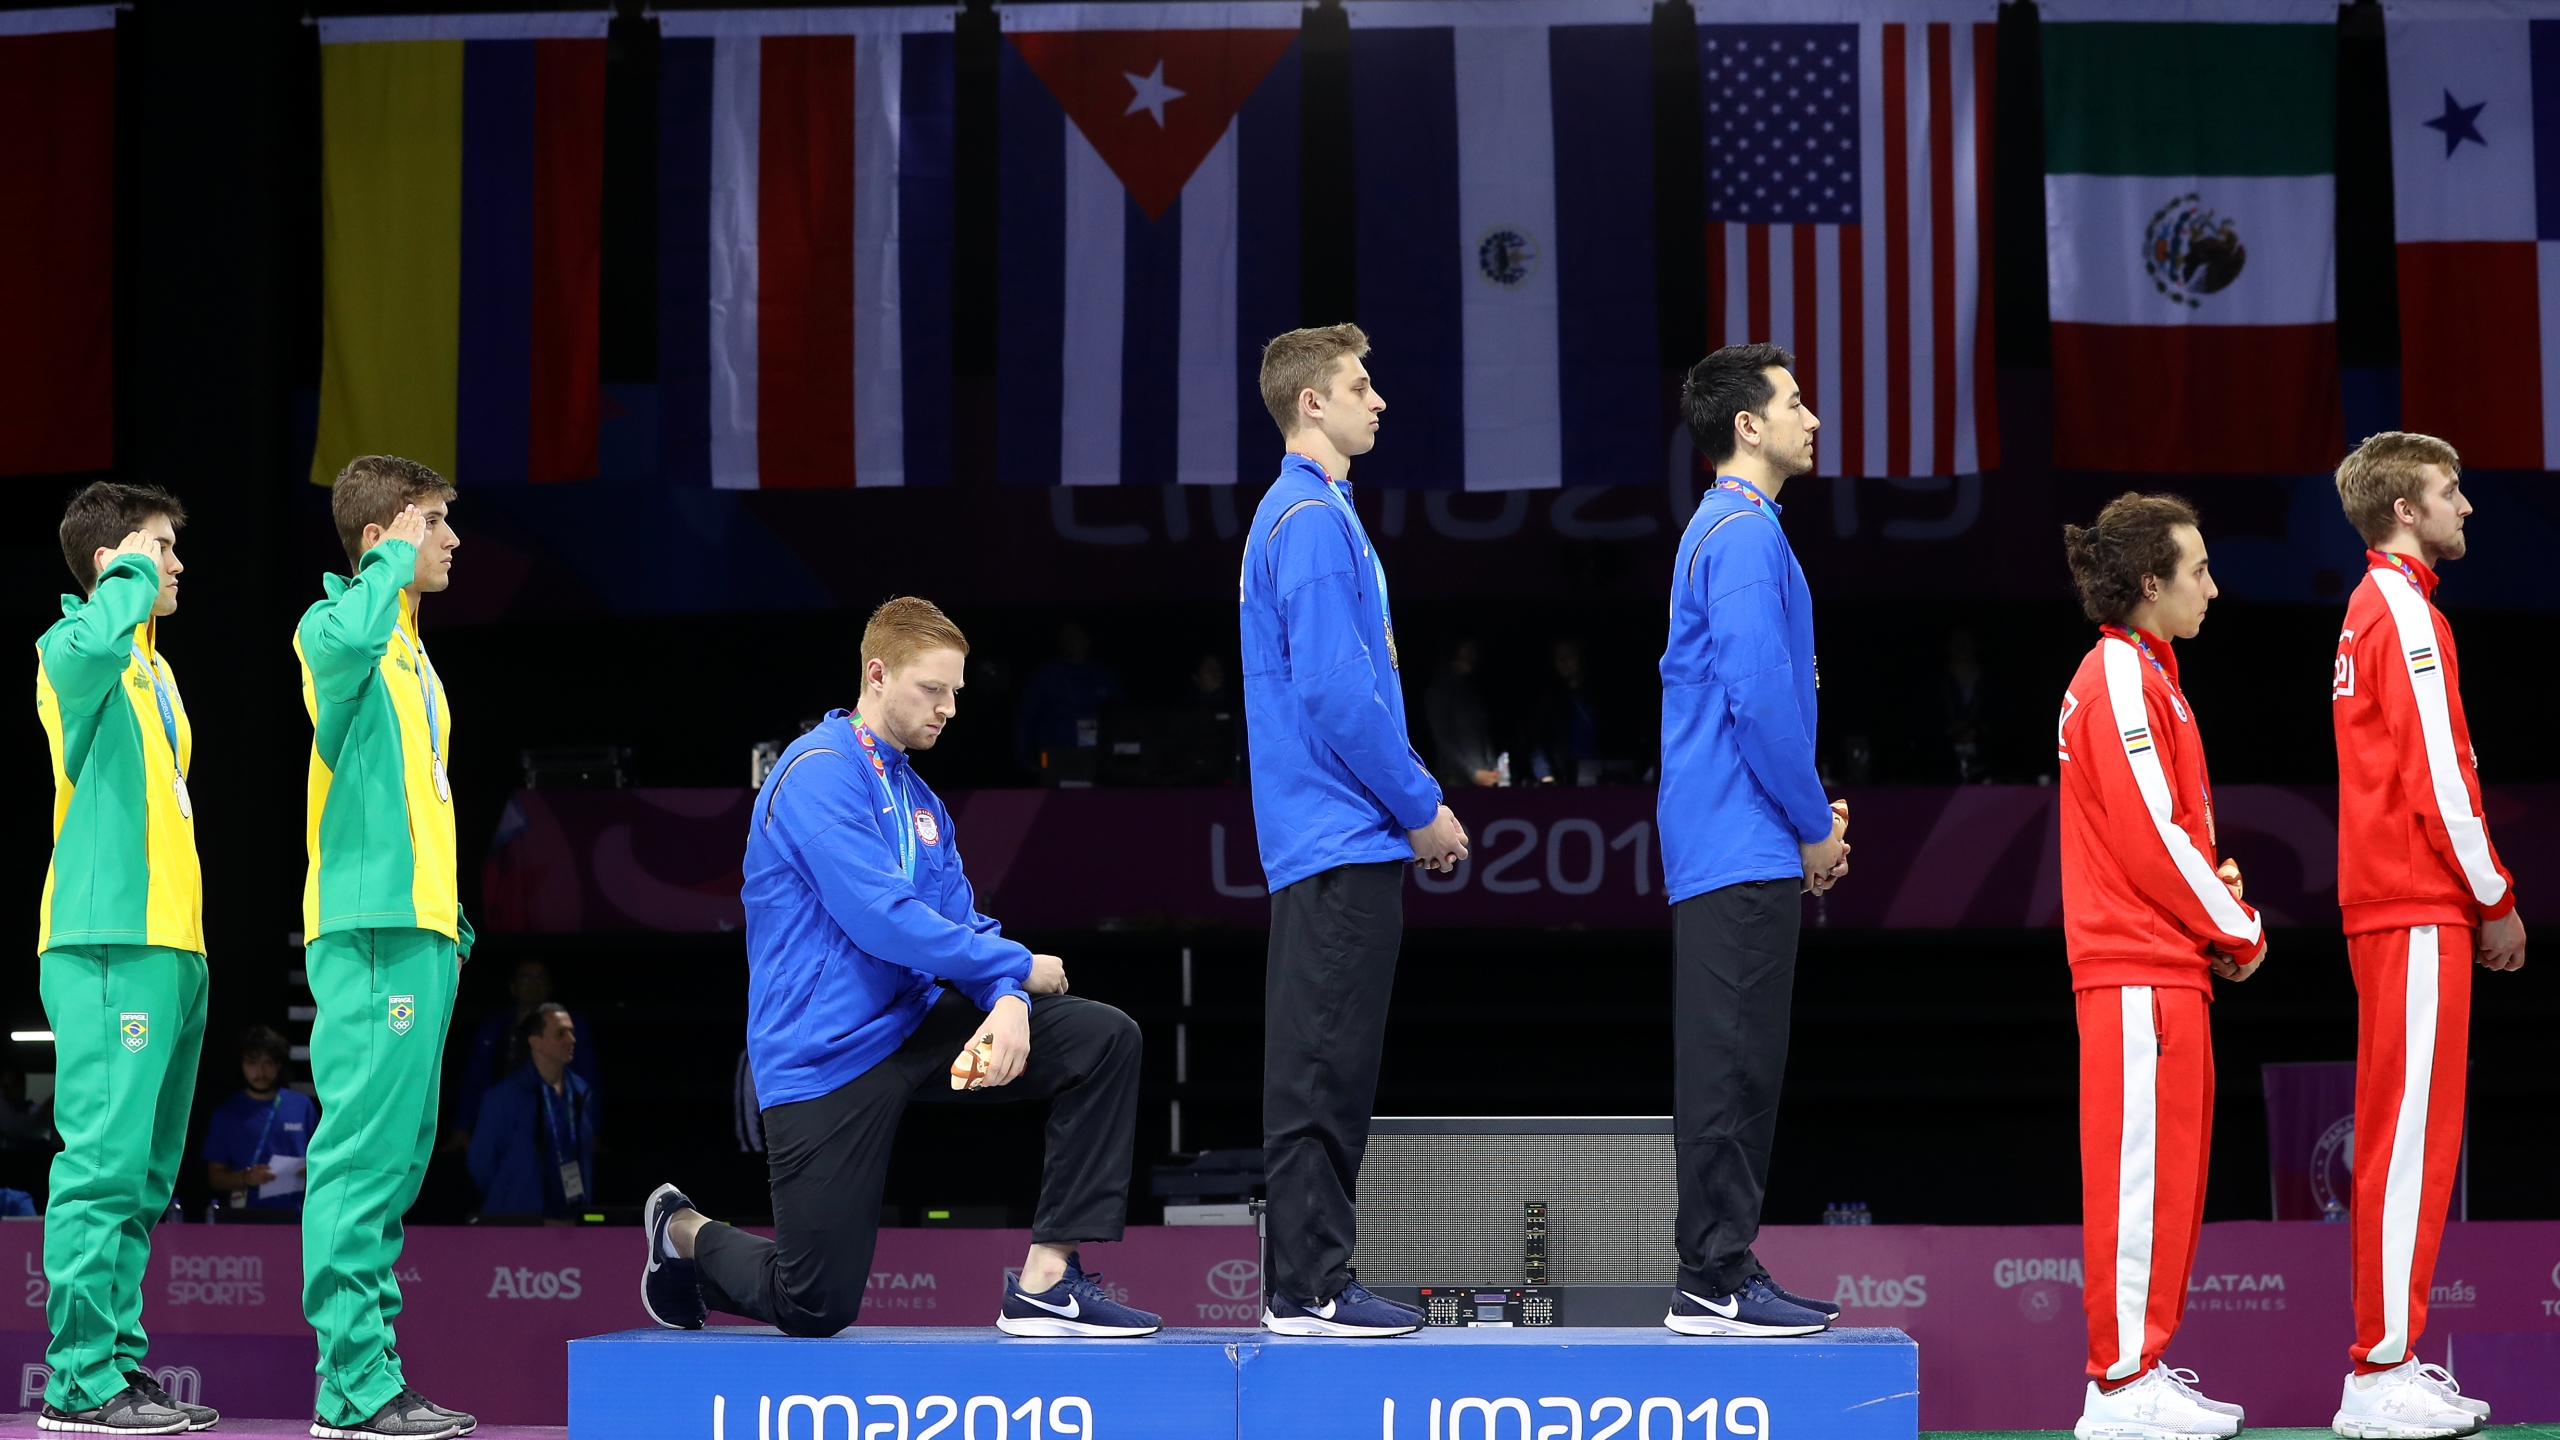 Gold medalist Race Imboden takes a knee during the national anthem ceremony in the 2019 Pan American Games at Fencing Pavilion of Lima Convention Center on Aug. 9, 2019 in Peru. (Credit: Leonardo Fernandez/Getty Images)